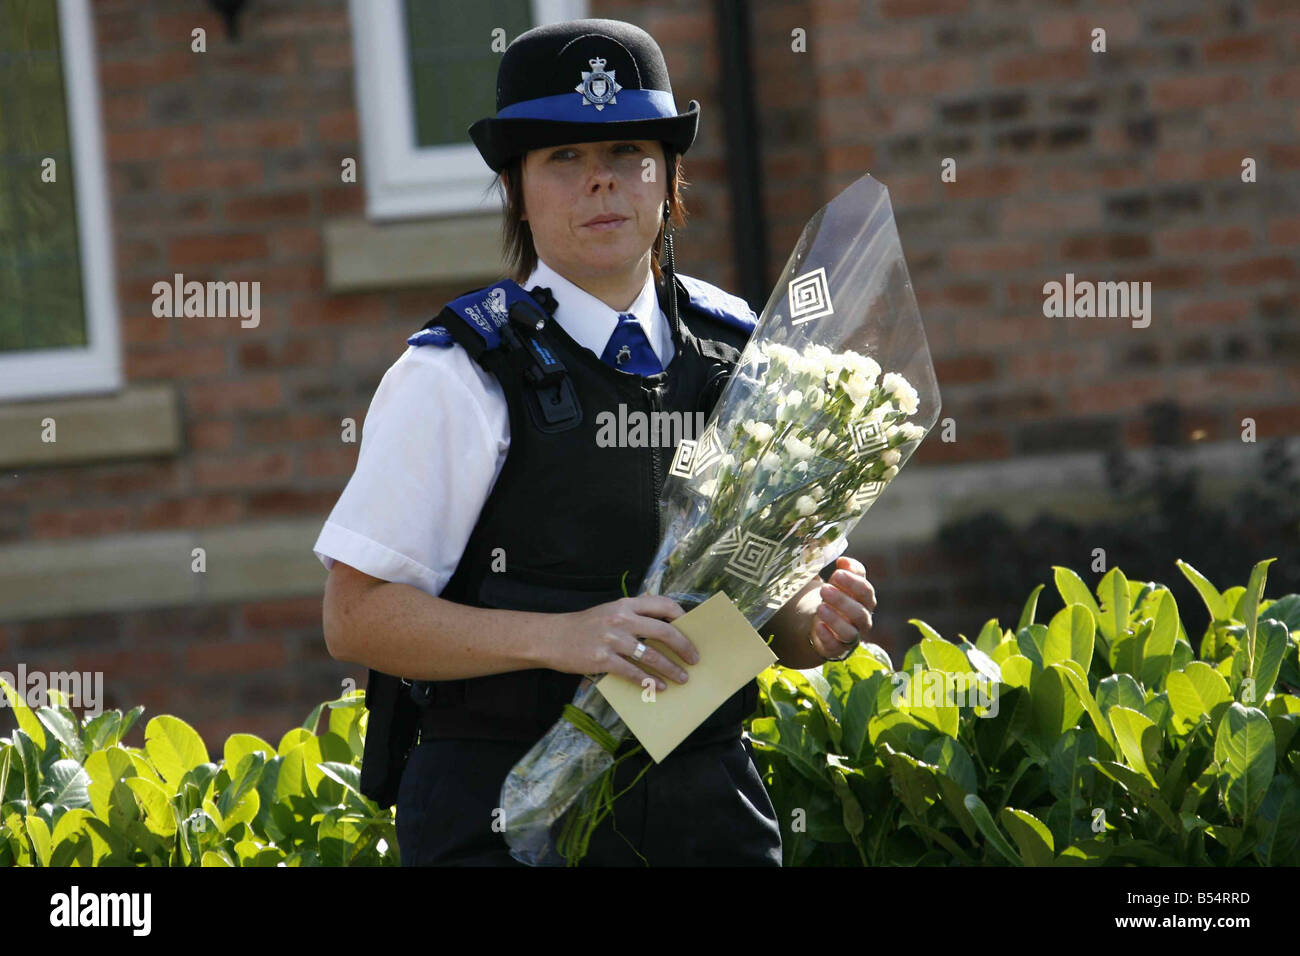 Picture Gallery - Page 6 Flowers-delivered-to-the-mccann-family-home-in-rothley-leics-madeleine-B54RRD